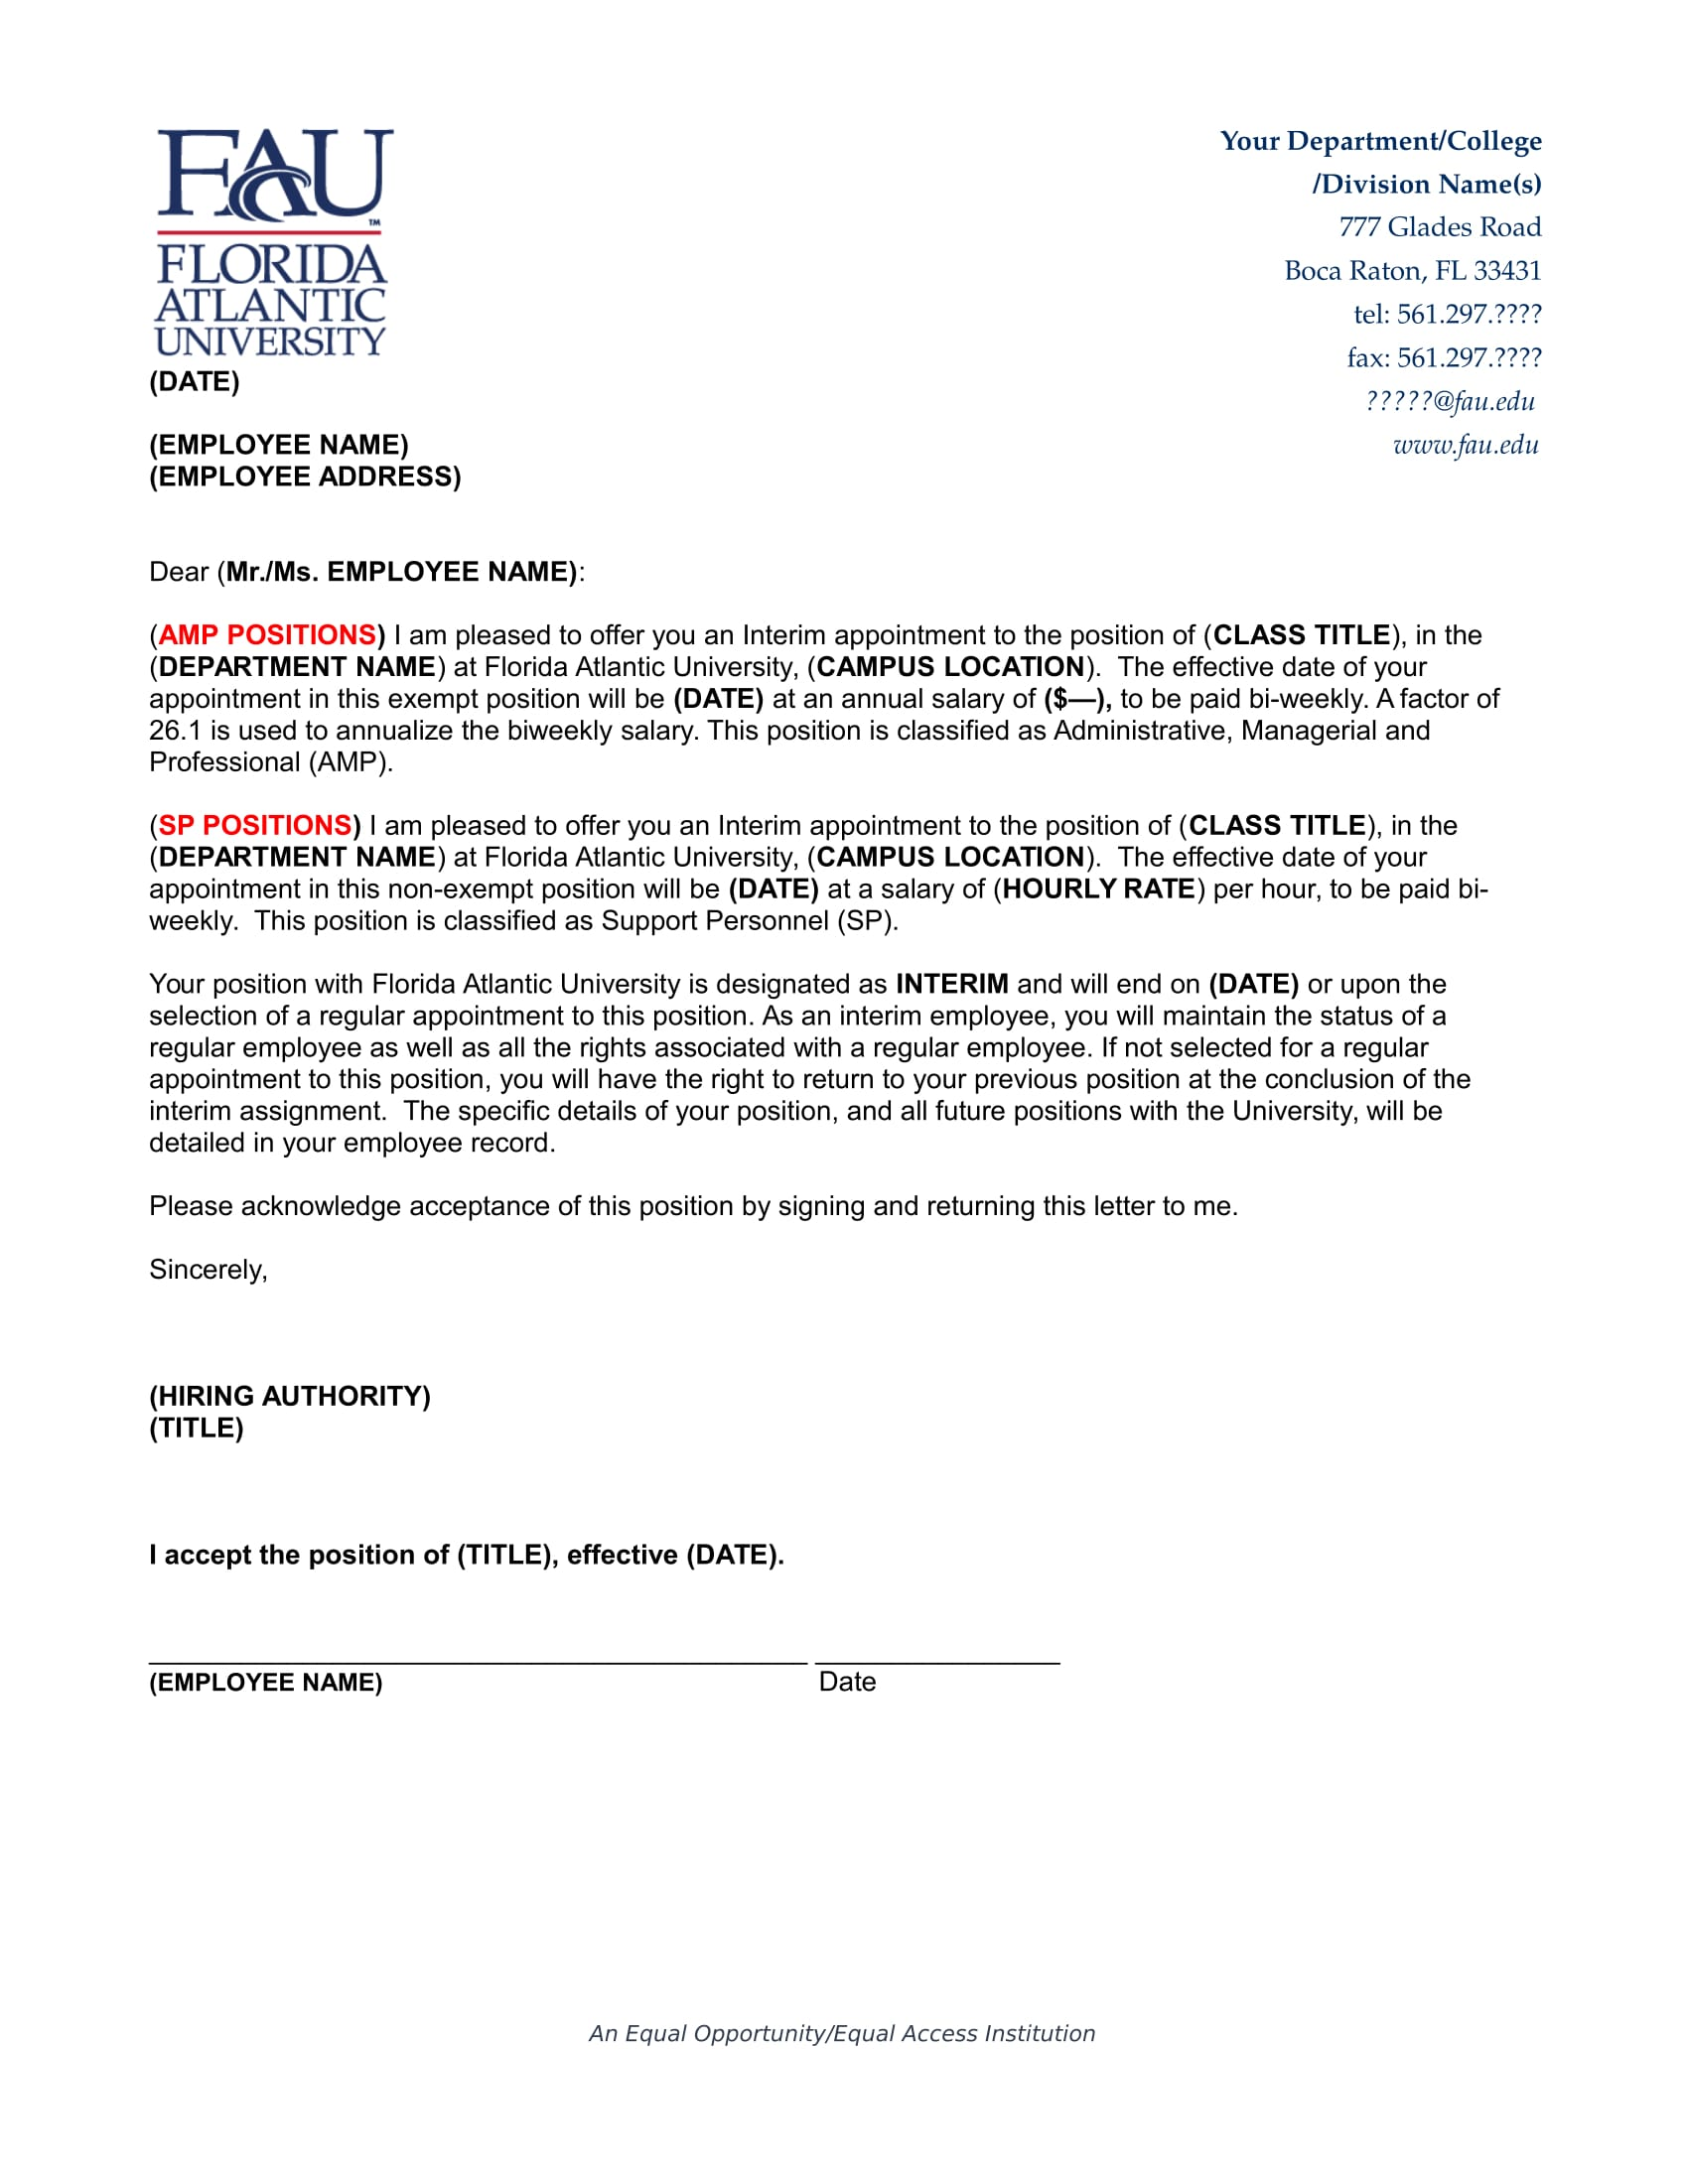 18 Job Appointment Letter Examples PDF Word Examples